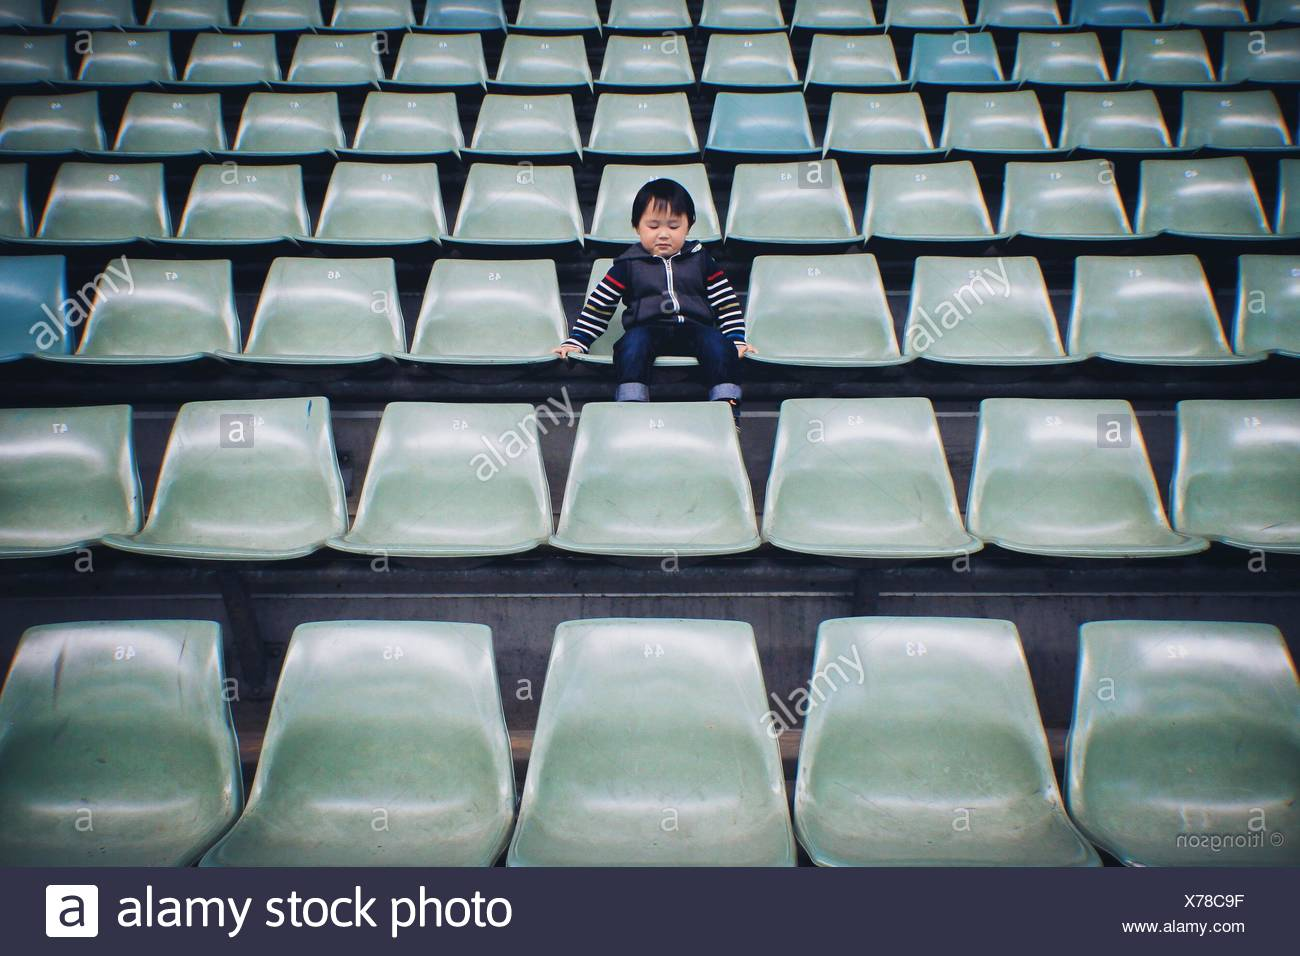 Boy Sitting On Chair In Stadium - Stock Image